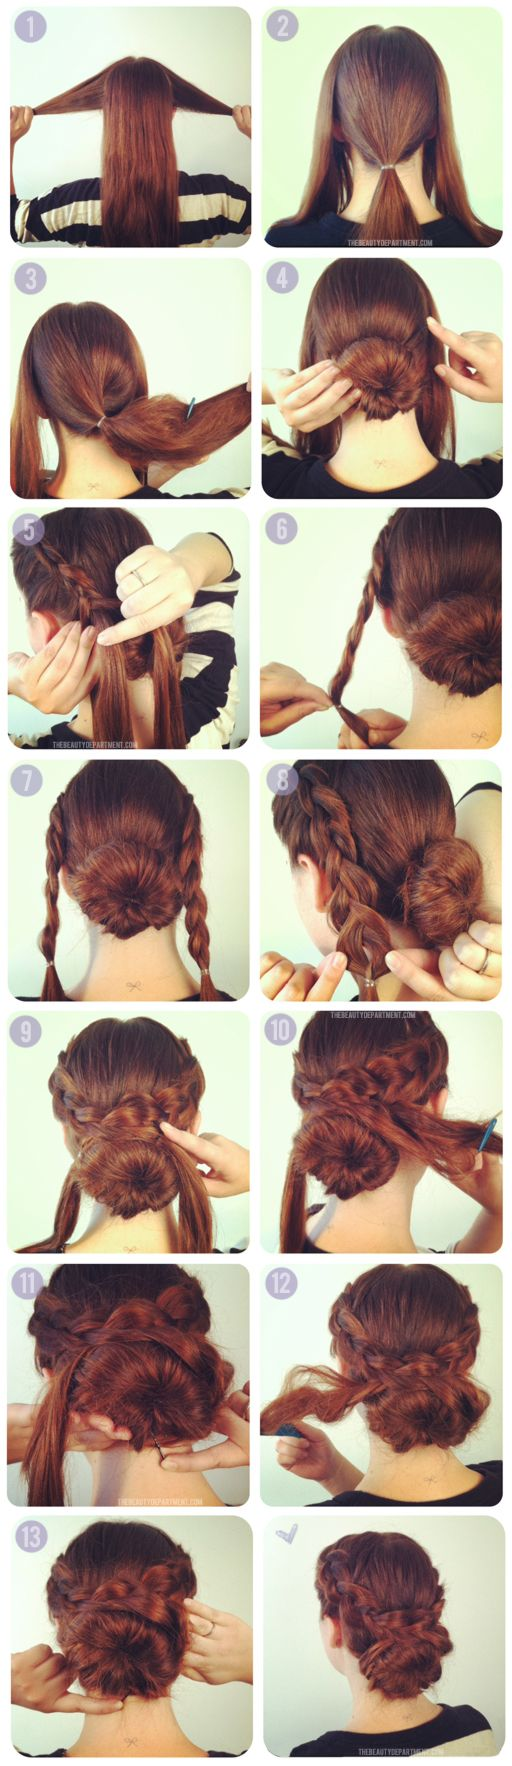 2 inside out french braids + 1 bun. Step by step tutorial on thebeautydepartment.com